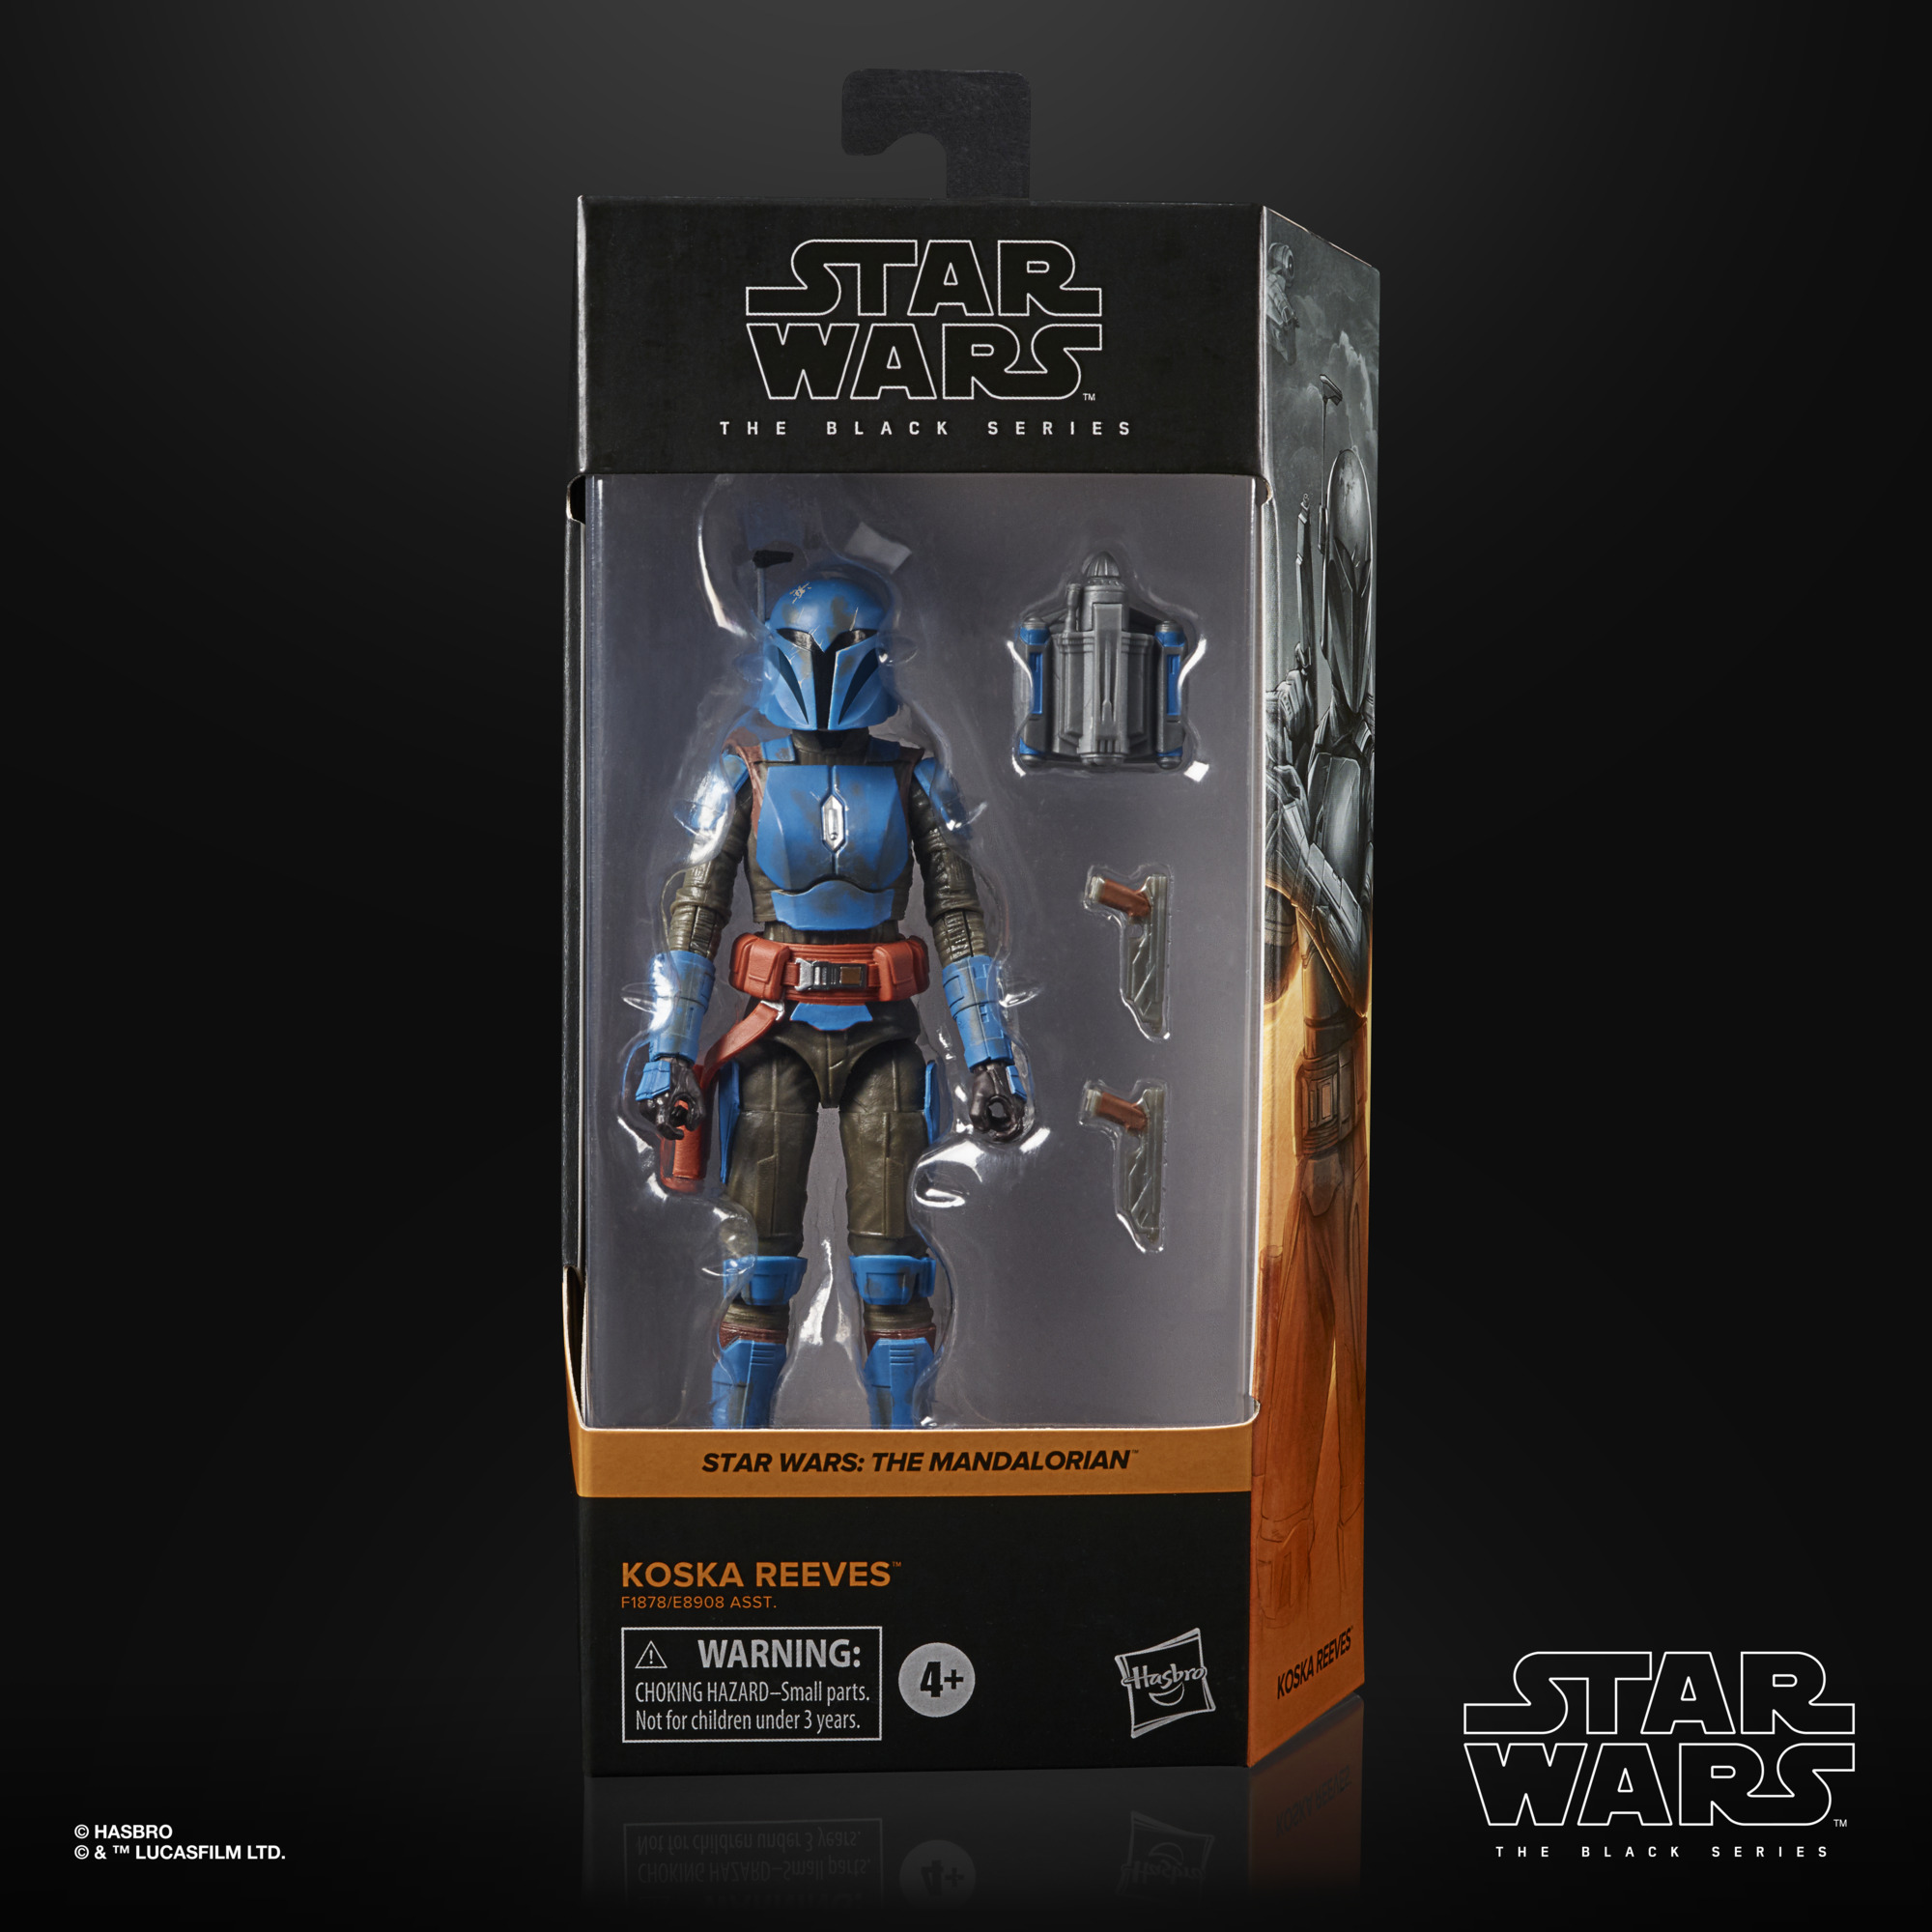 Star Wars The Black Series Koska Reeves Figure 15 cm  F1878 5010993828036